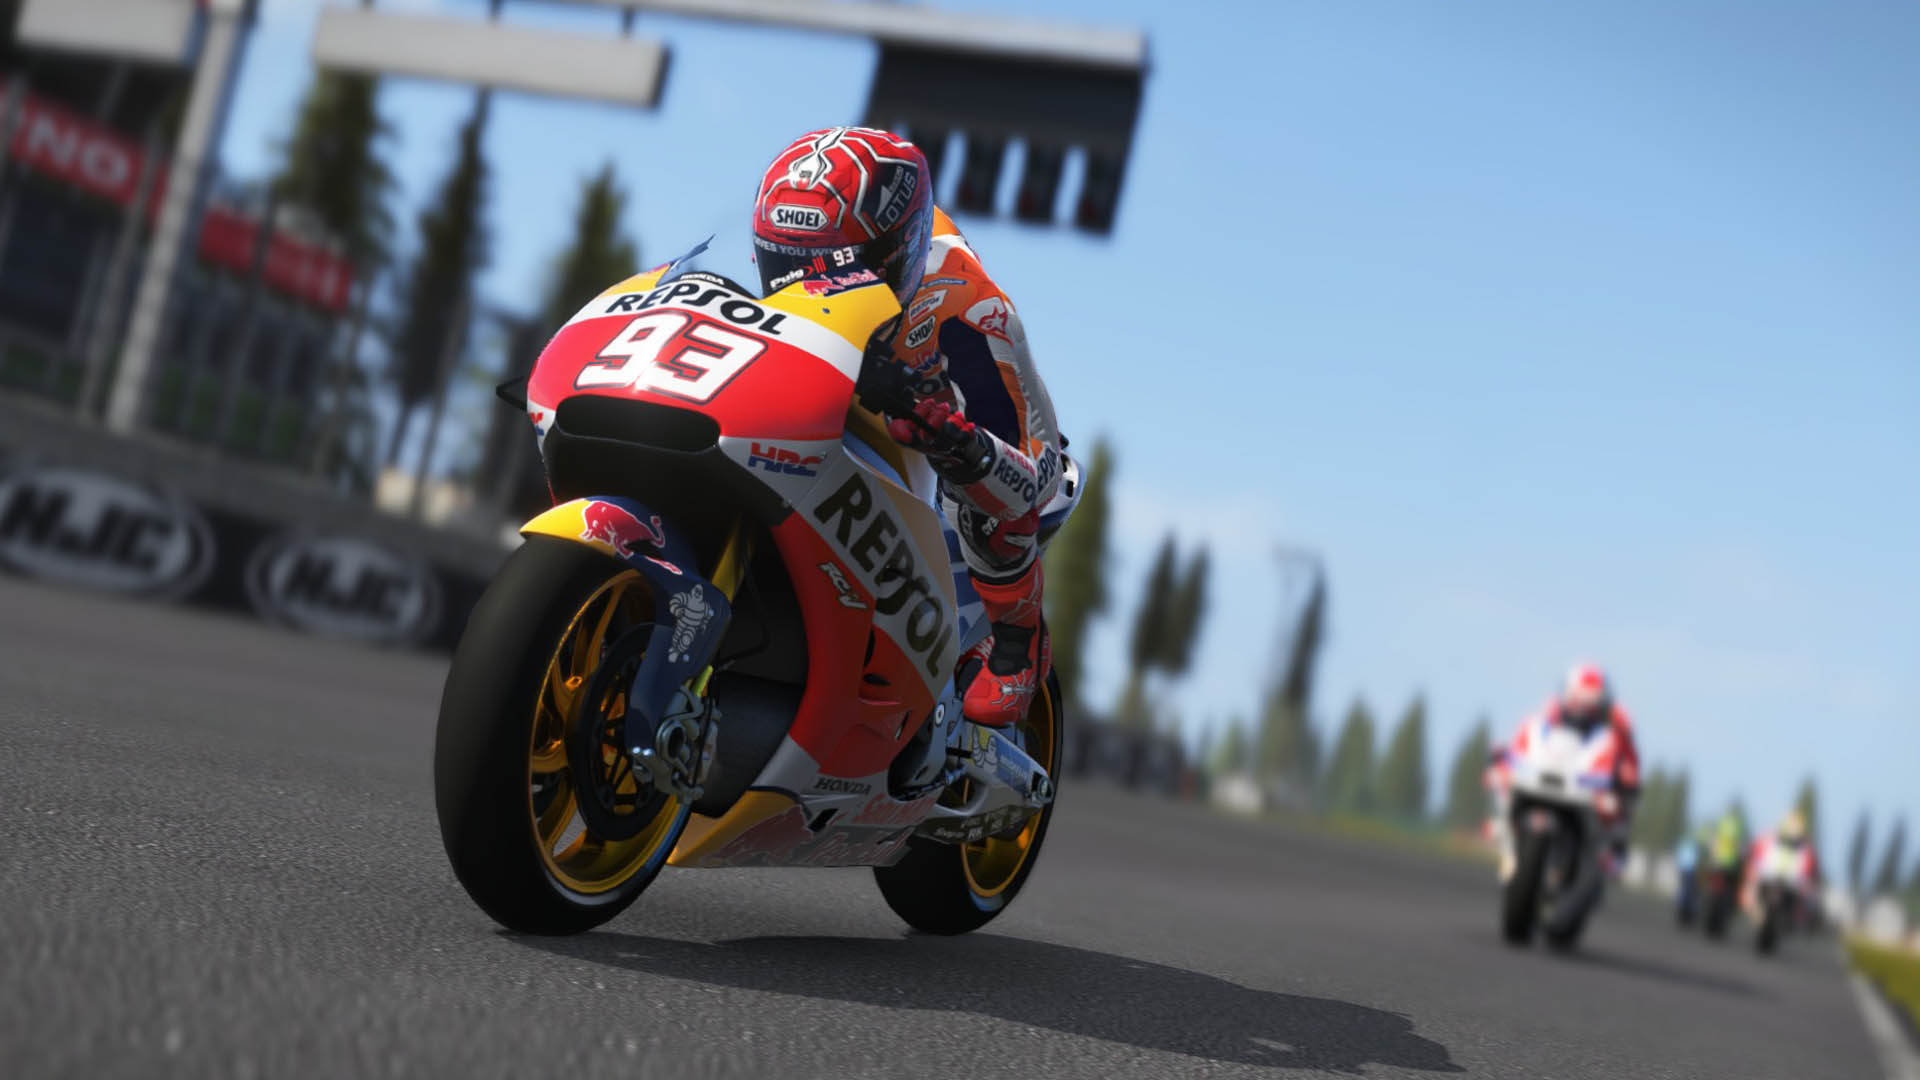 Motogp Ps4 Dlc | MotoGP 2017 Info, Video, Points Table